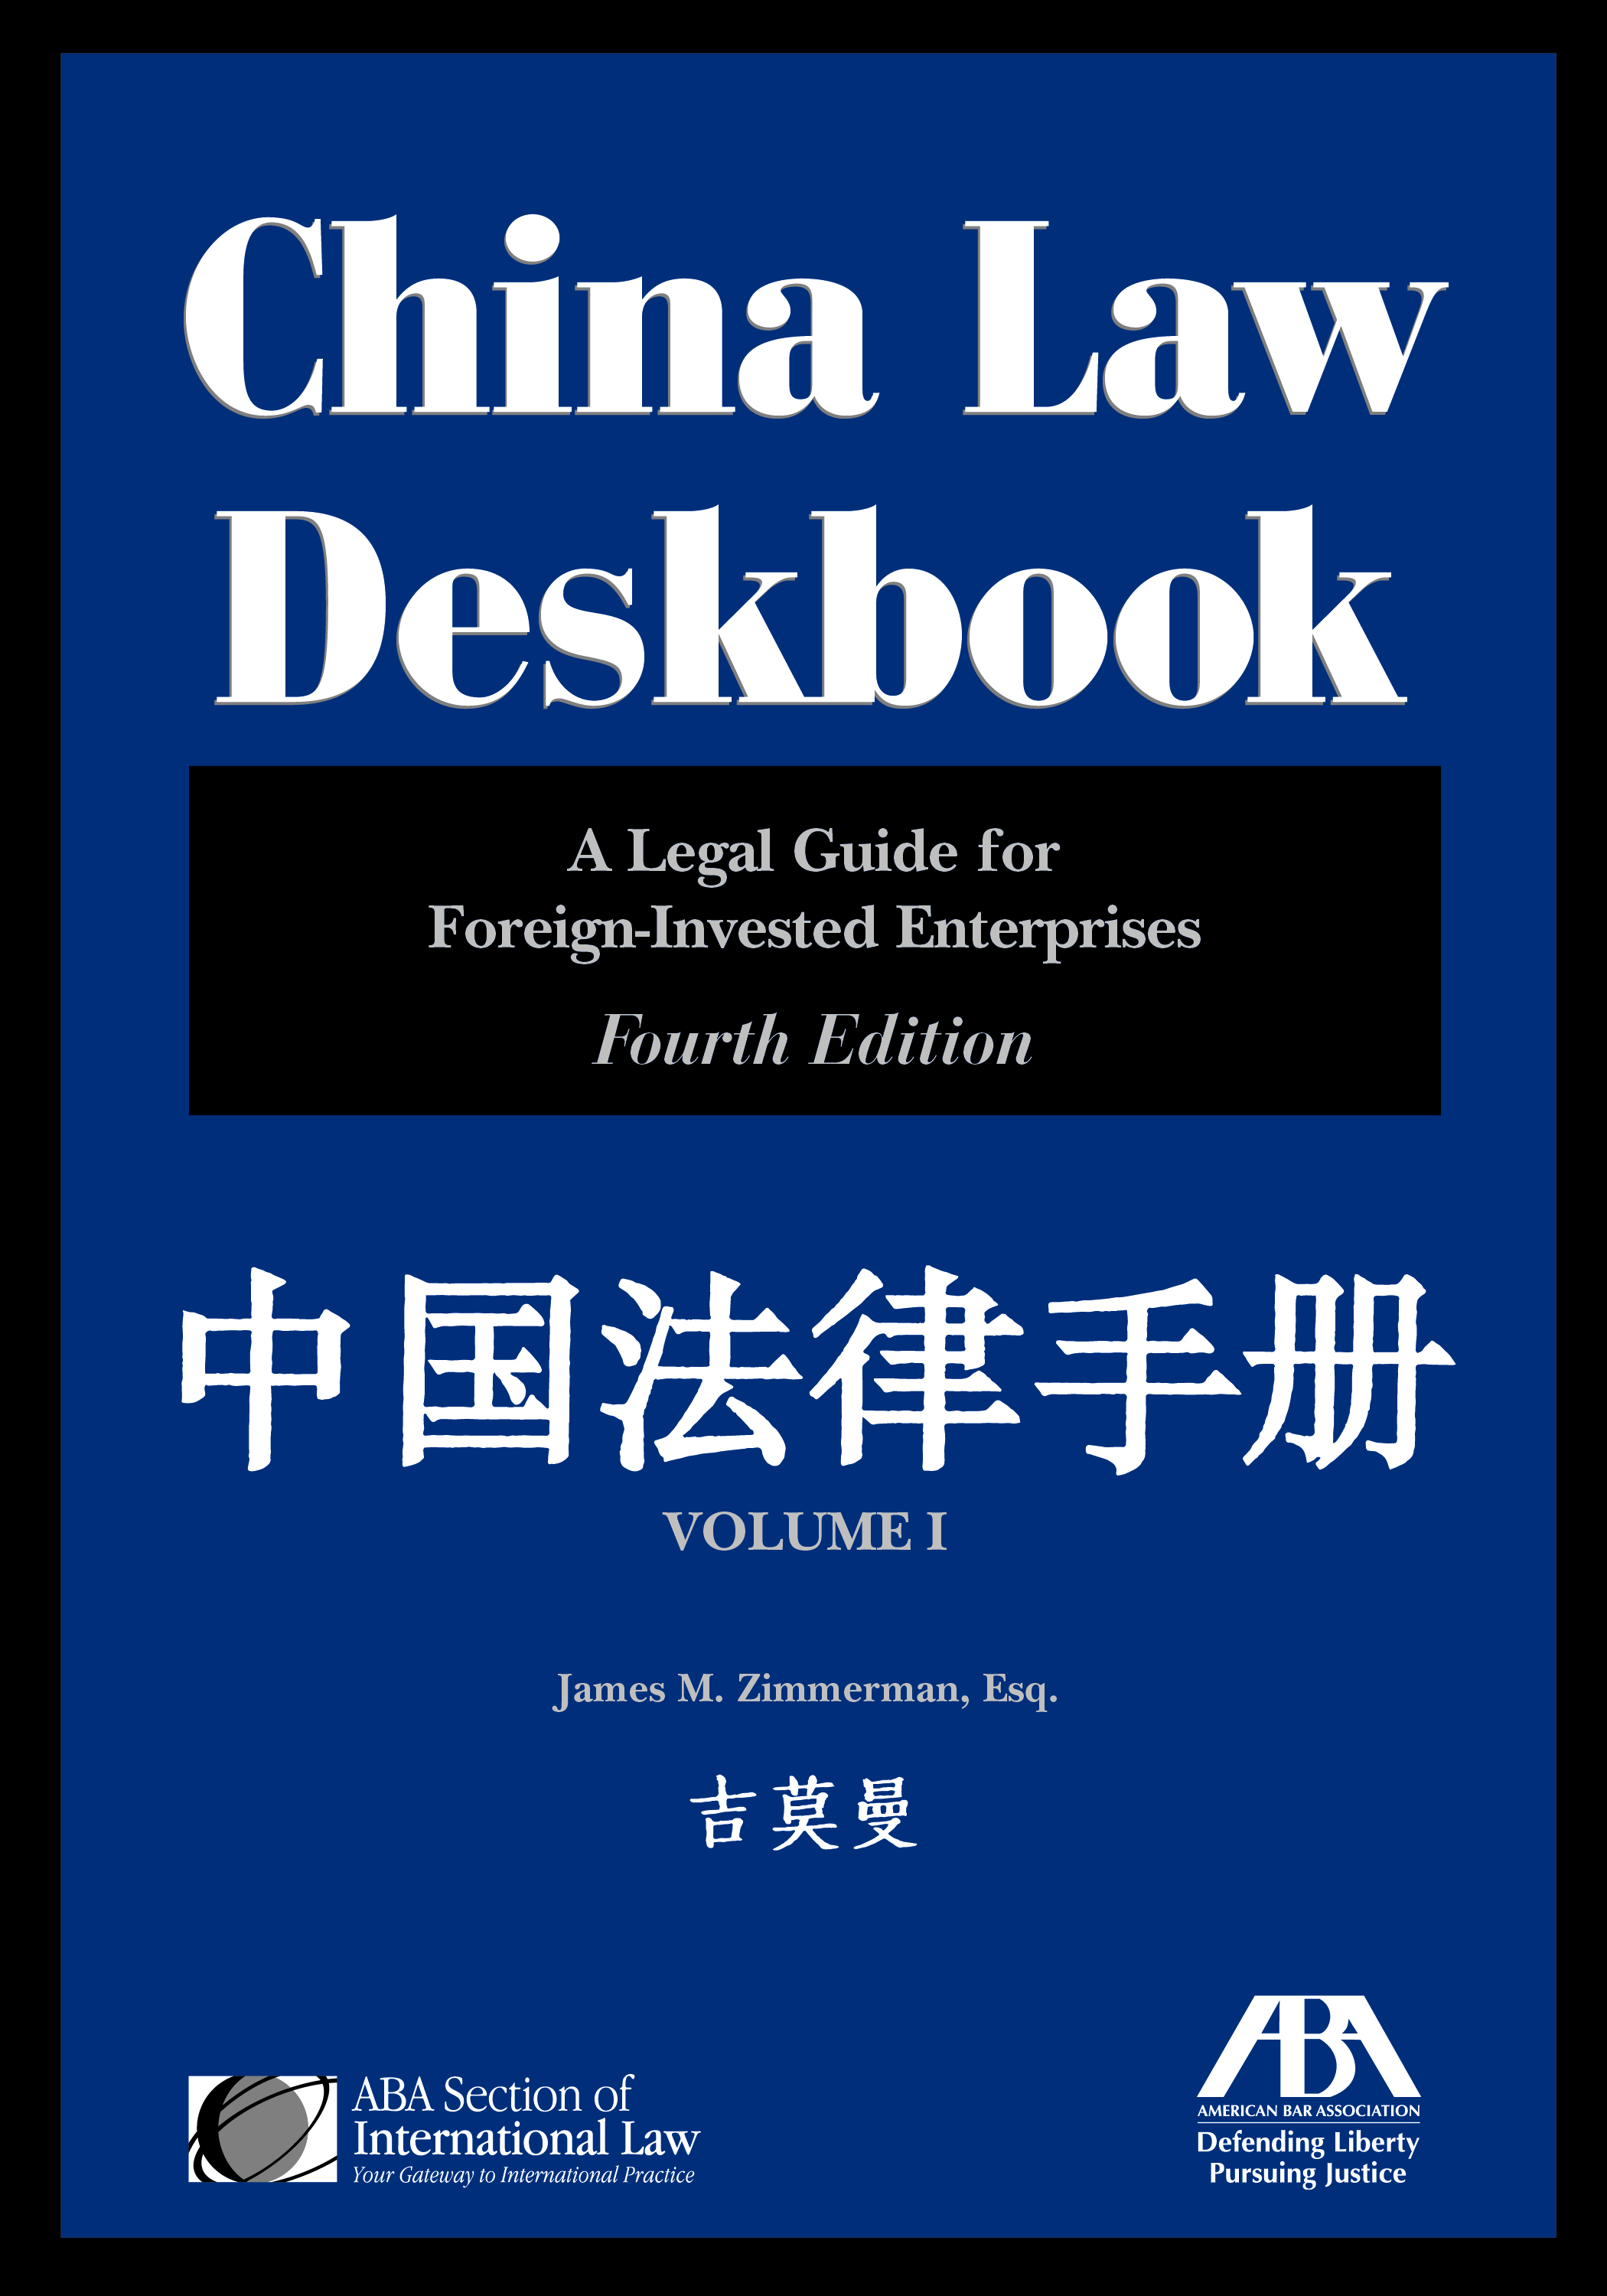 China Law Deskbook: A Legal Guide for Foreign-Invested Enterprises, Fourth Edition